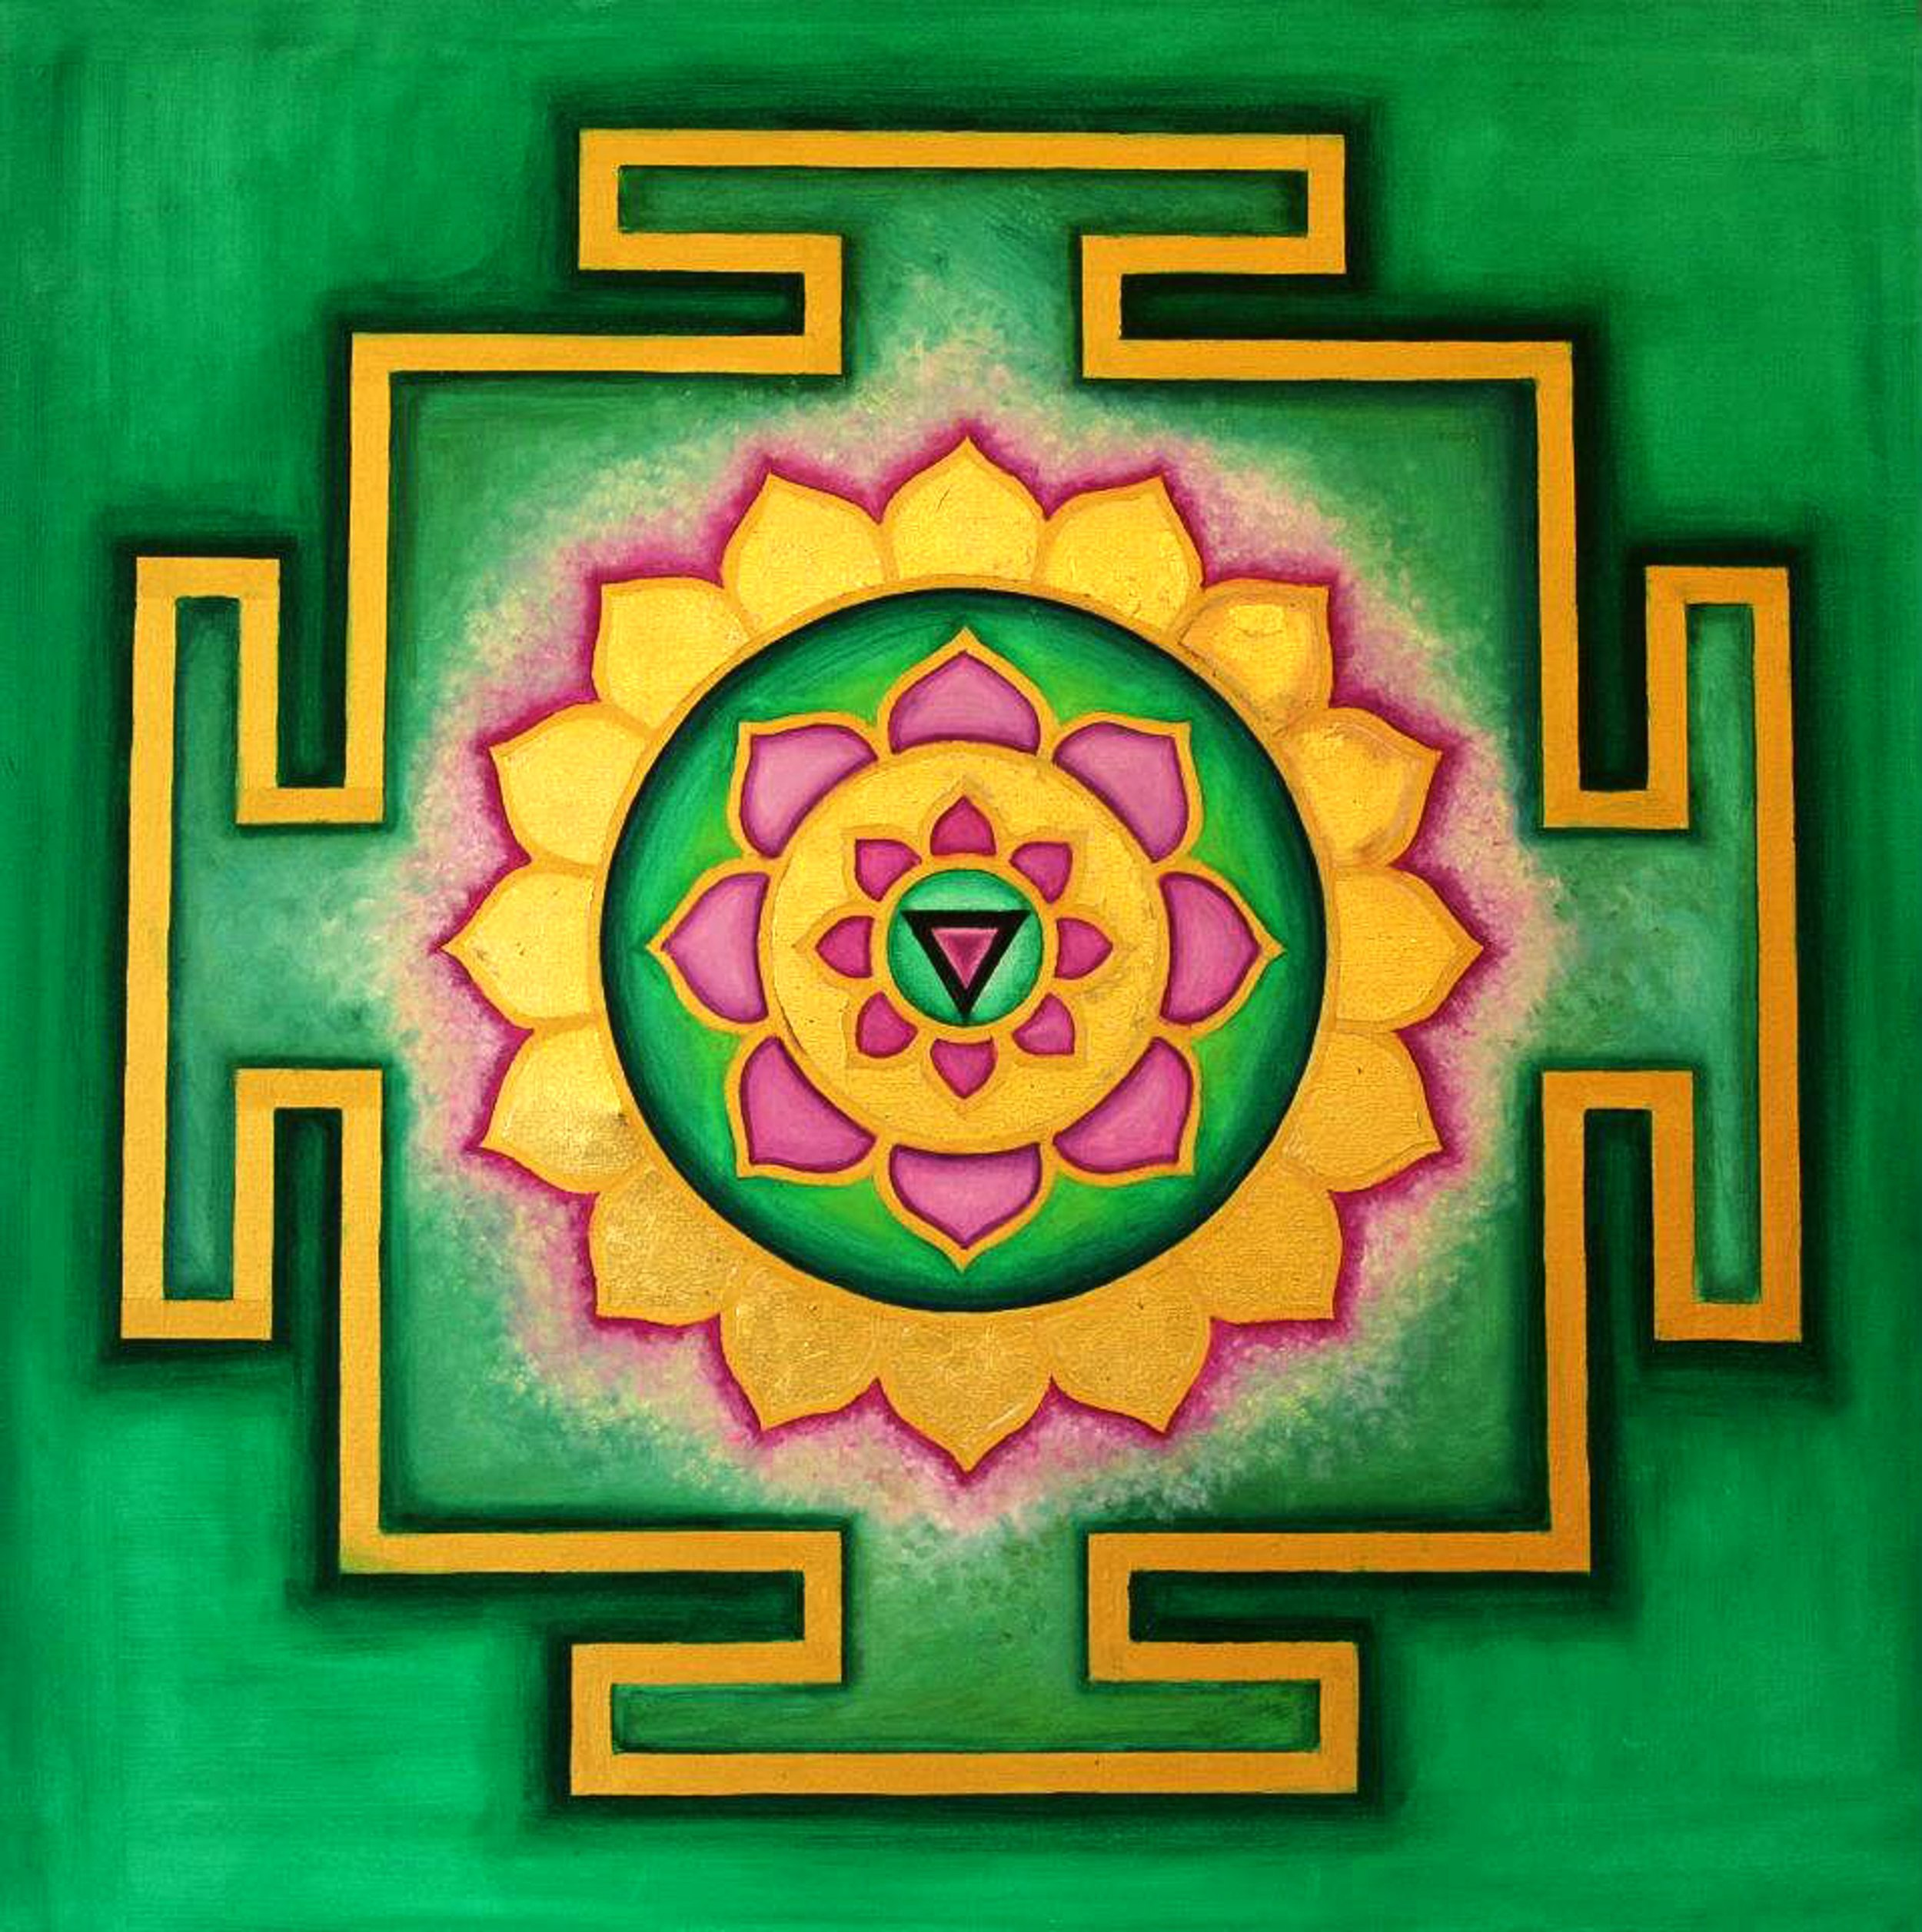 Yantra of the Great Cosmic Power Matangi, oil on canvas, 100x100 cm (see full image in Gallery)